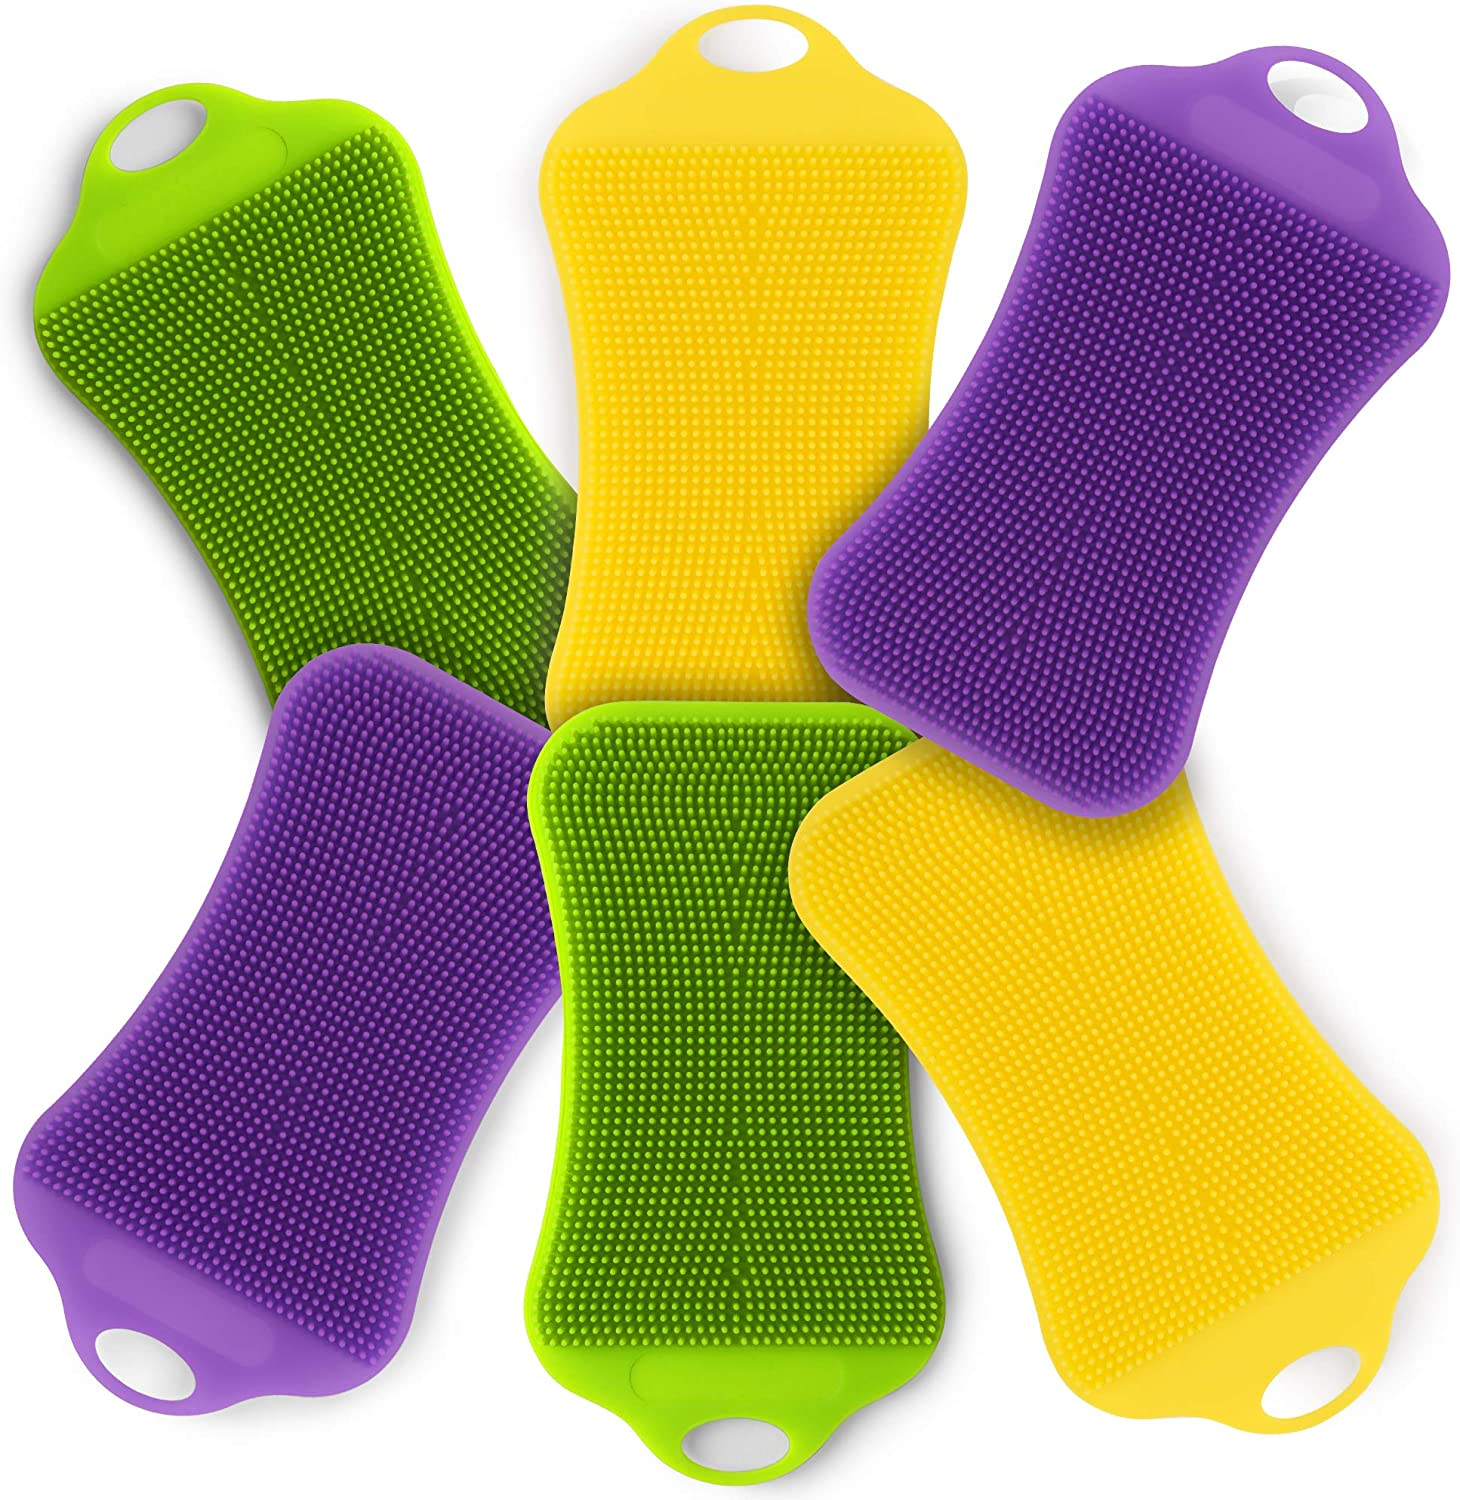 Silicone Sponge Dish Scrubber Set - 6 Pack Reusable Dishwashing Double-Sided Multipurpose Non Stick Silicone Dish Sponges 2 Yellow 2 Purple 2 Green for Cleaning Dishes Kitchen Brush Scrub Accessories